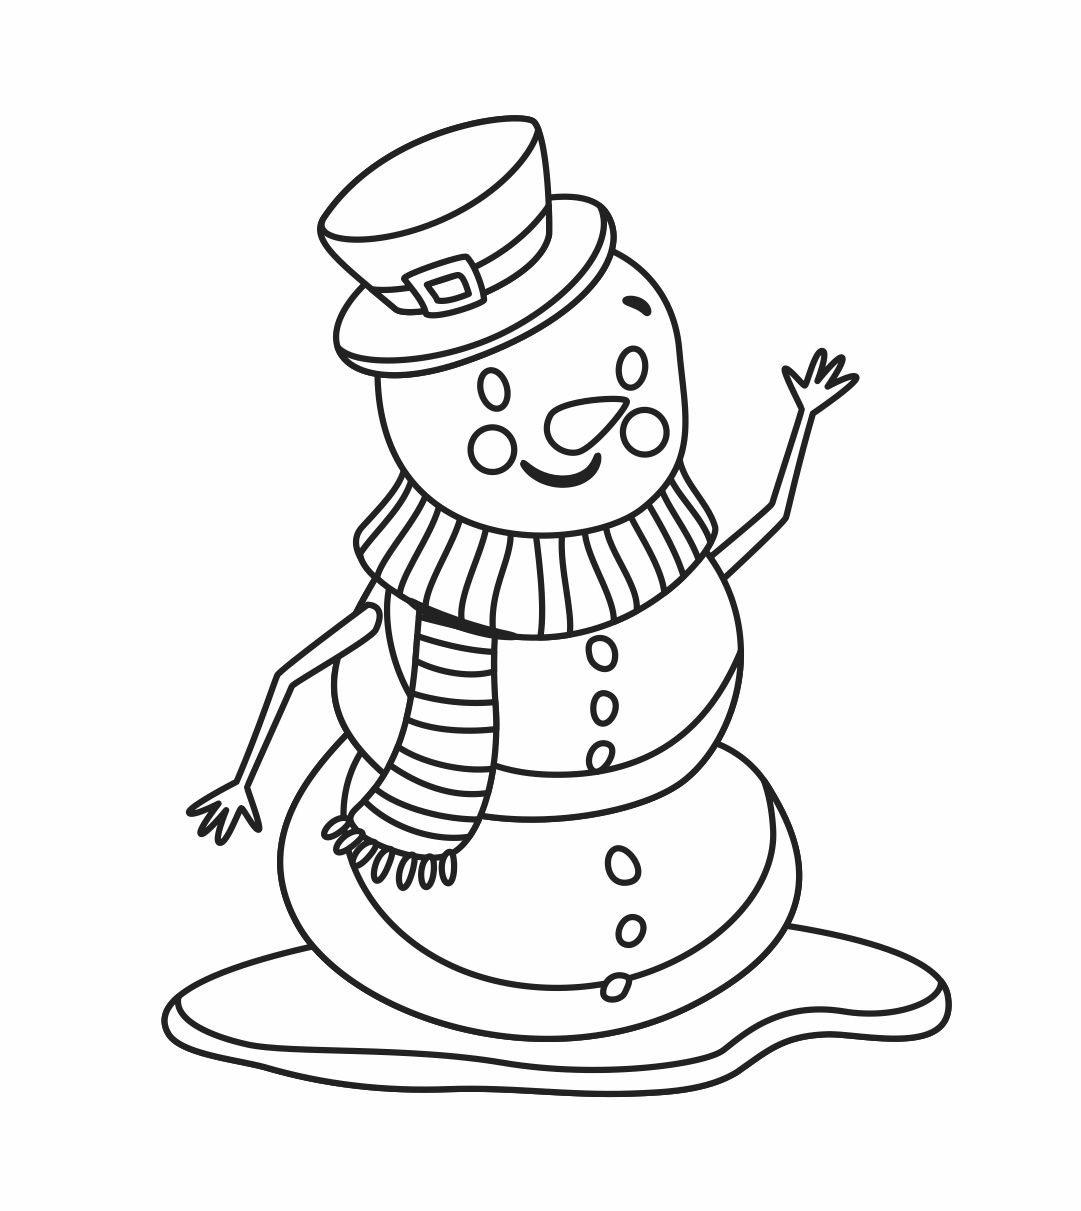 Winter Printable Snowman Coloring Pages